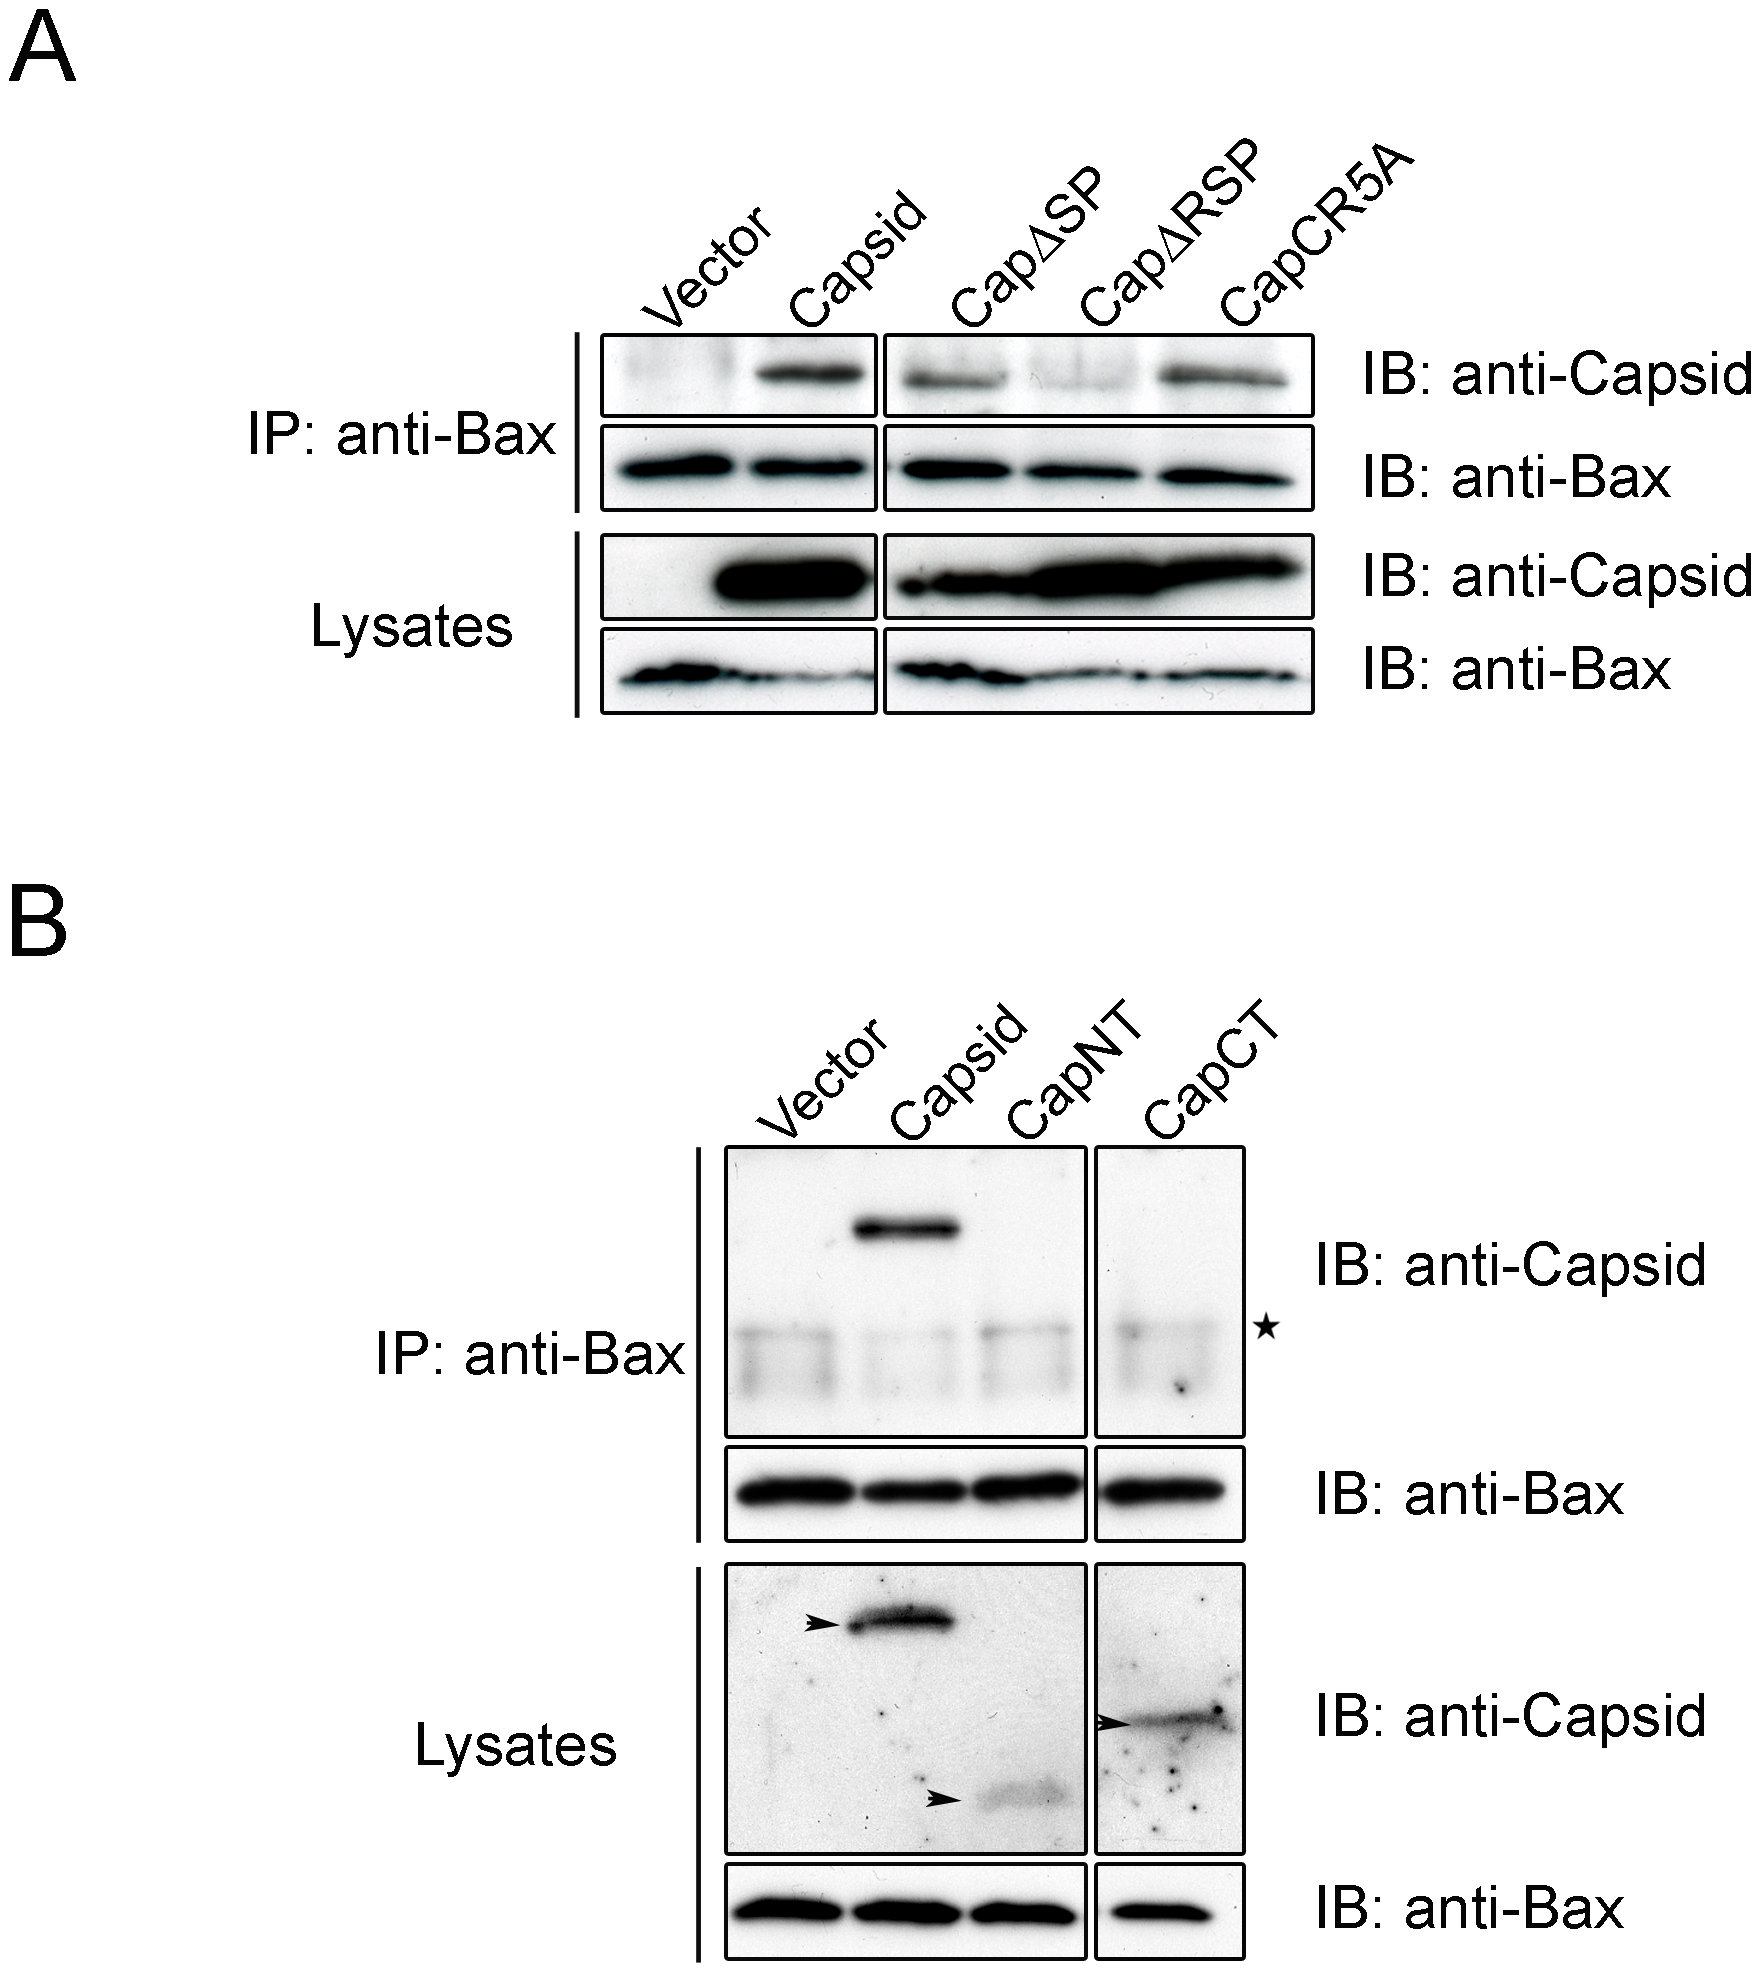 The carboxyl-terminal R motif in capsid protein is required for binding to Bax.